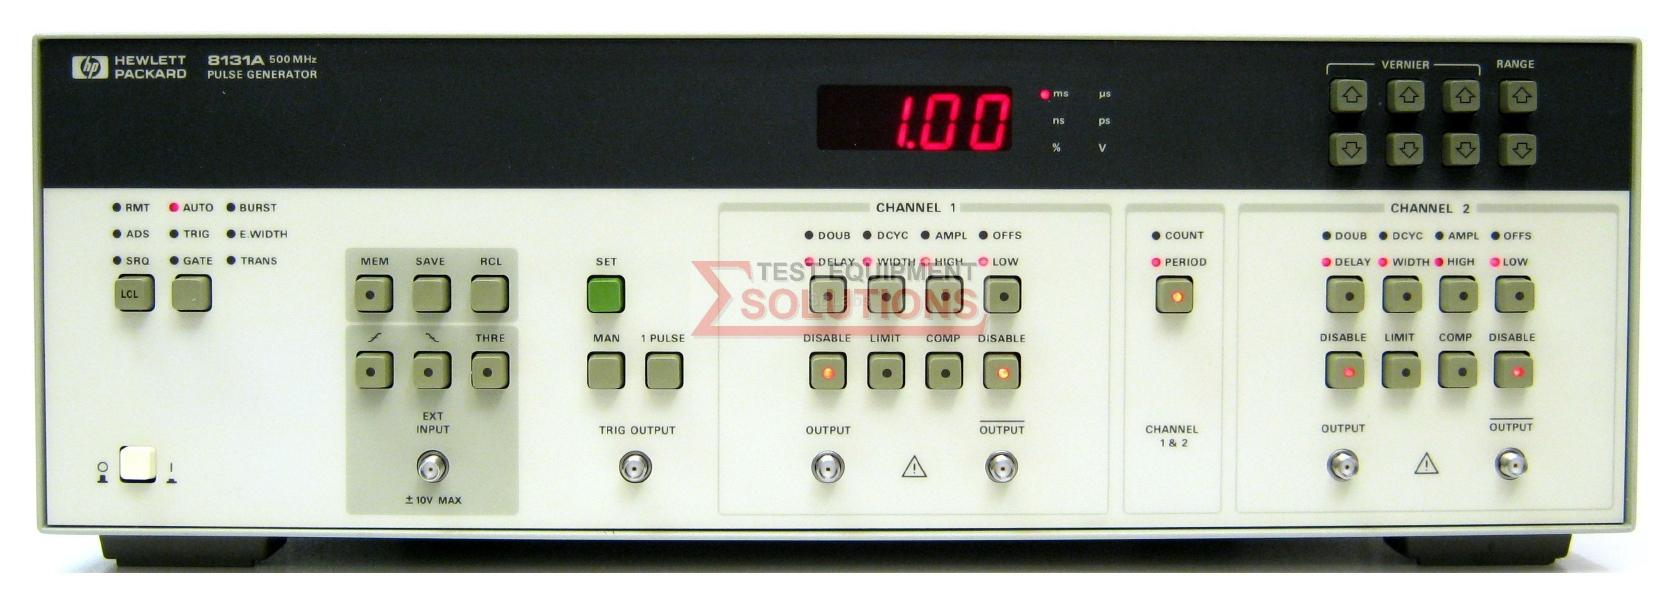 Keysight 8131A - Buy Refurbished Used or Rent at UK's Lowest Price